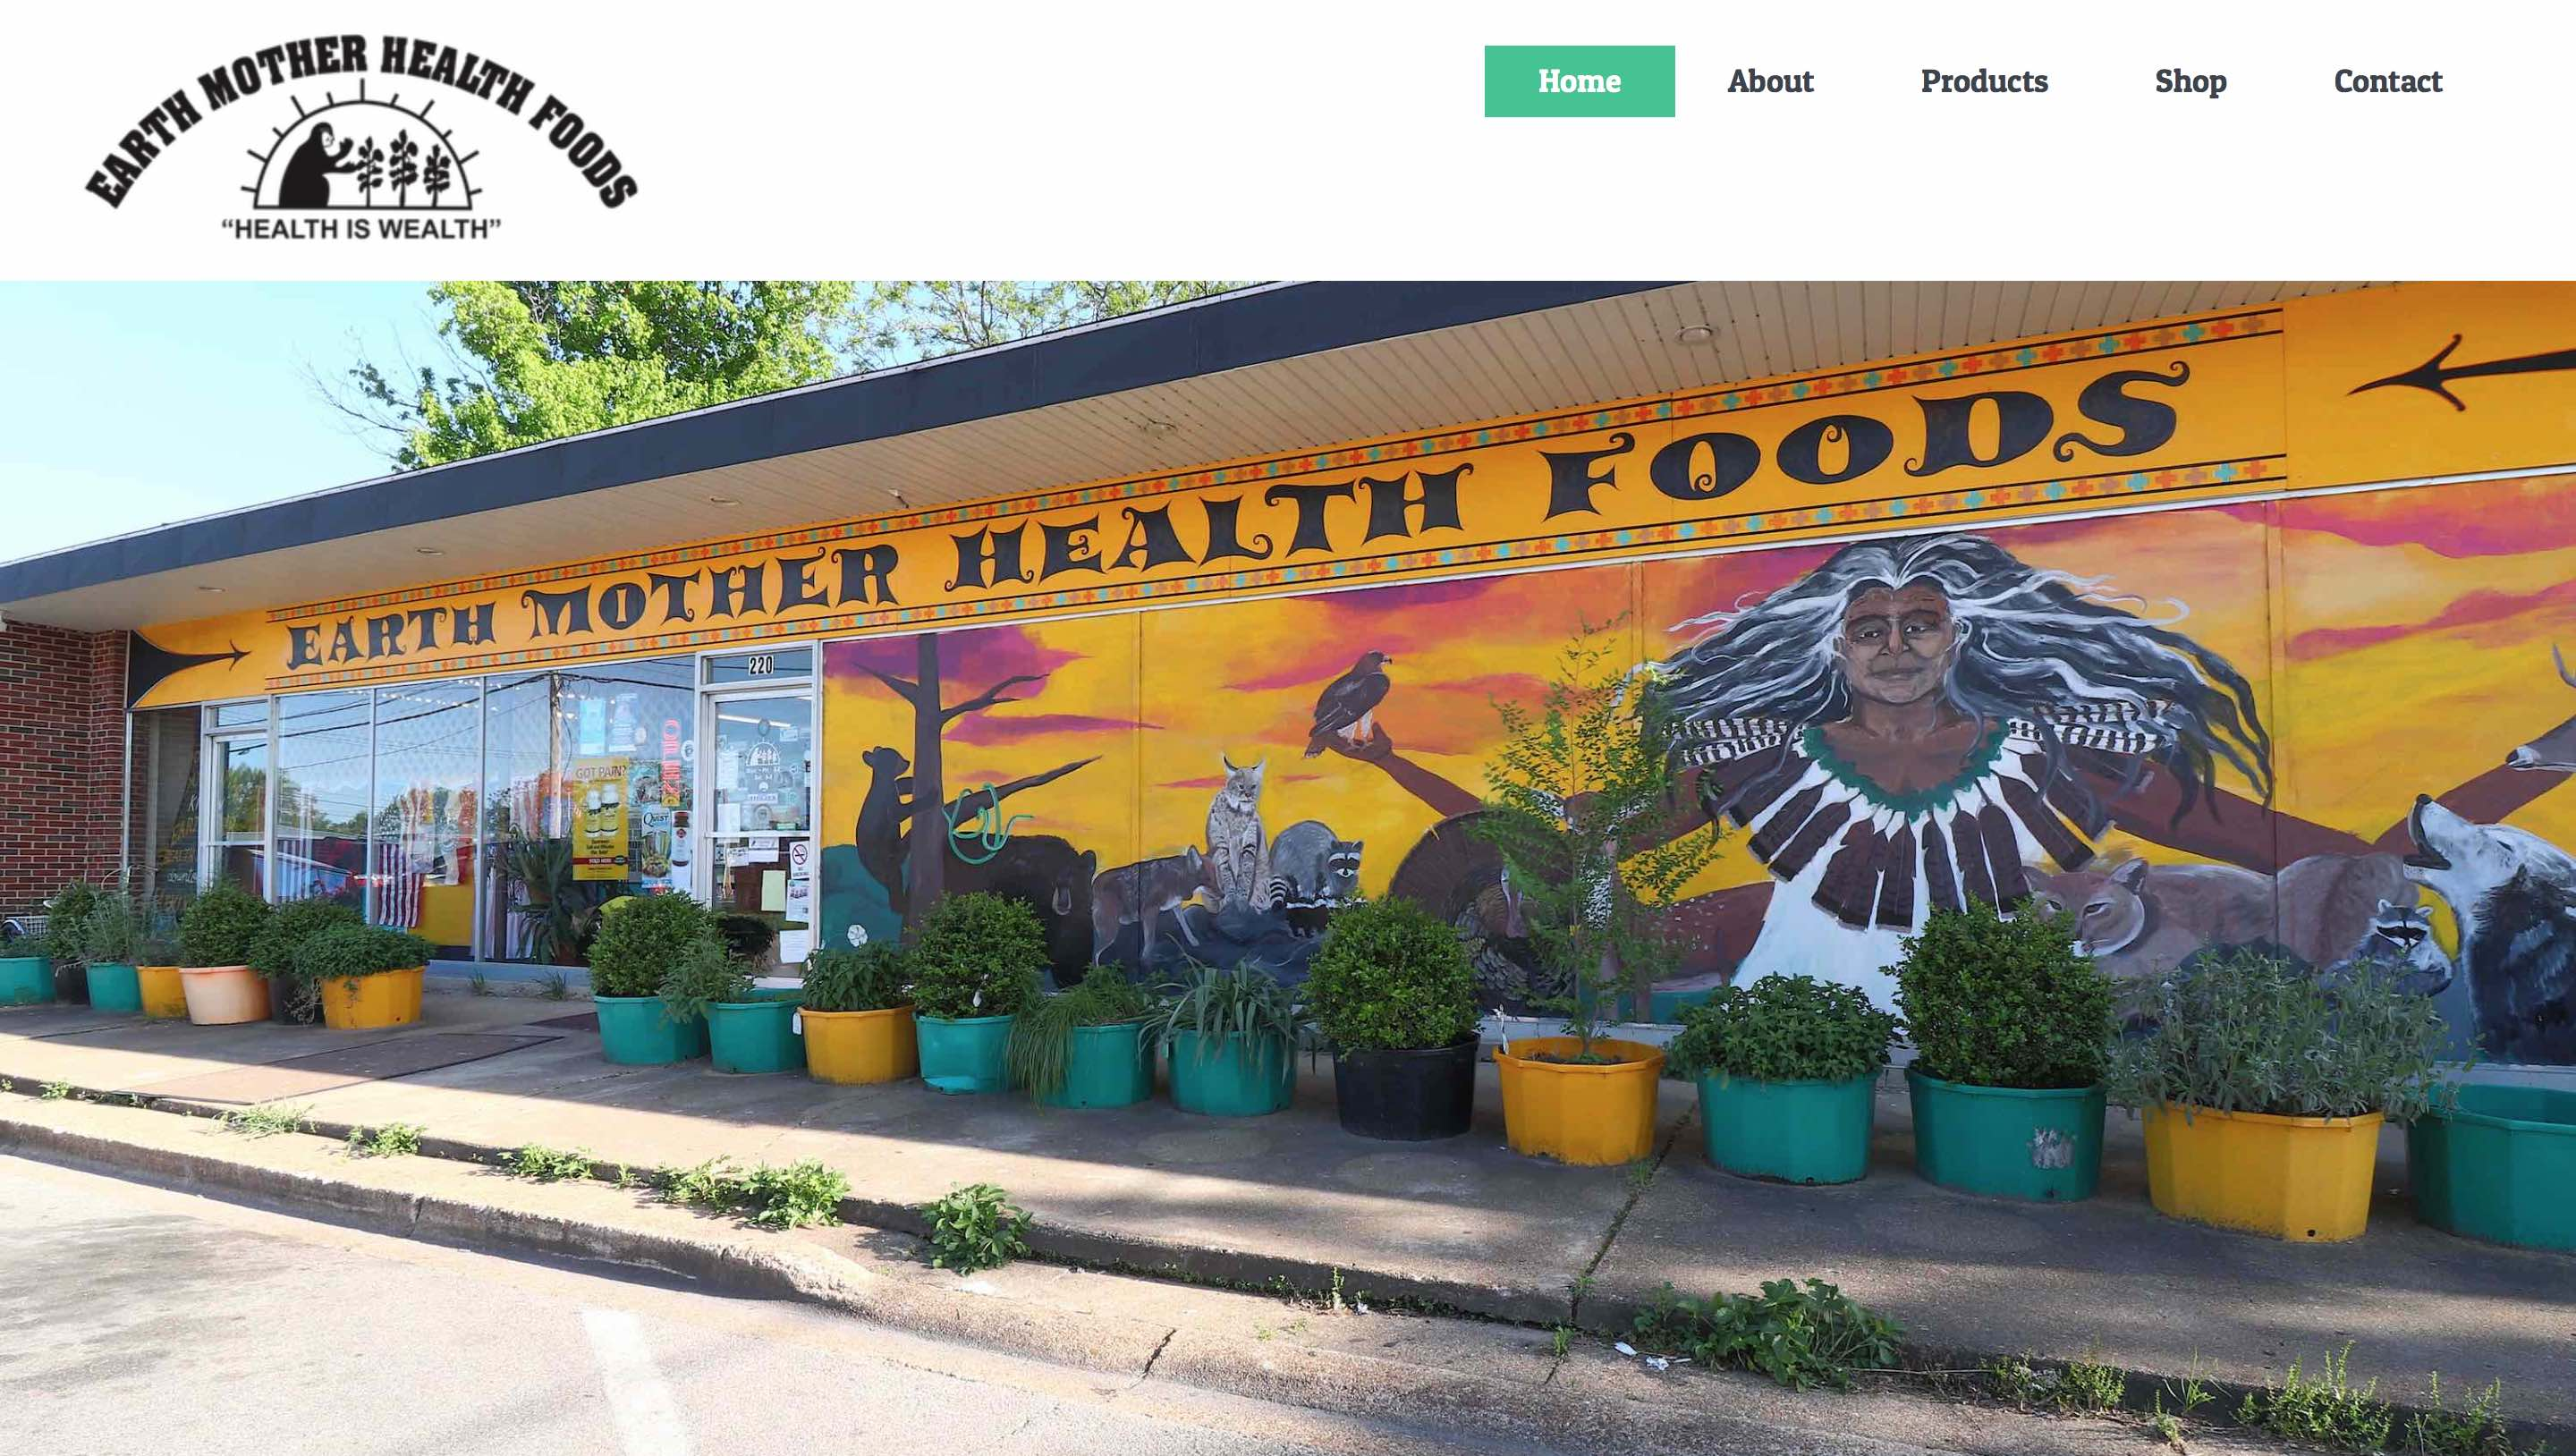 Earth Mother Health Foods – Website